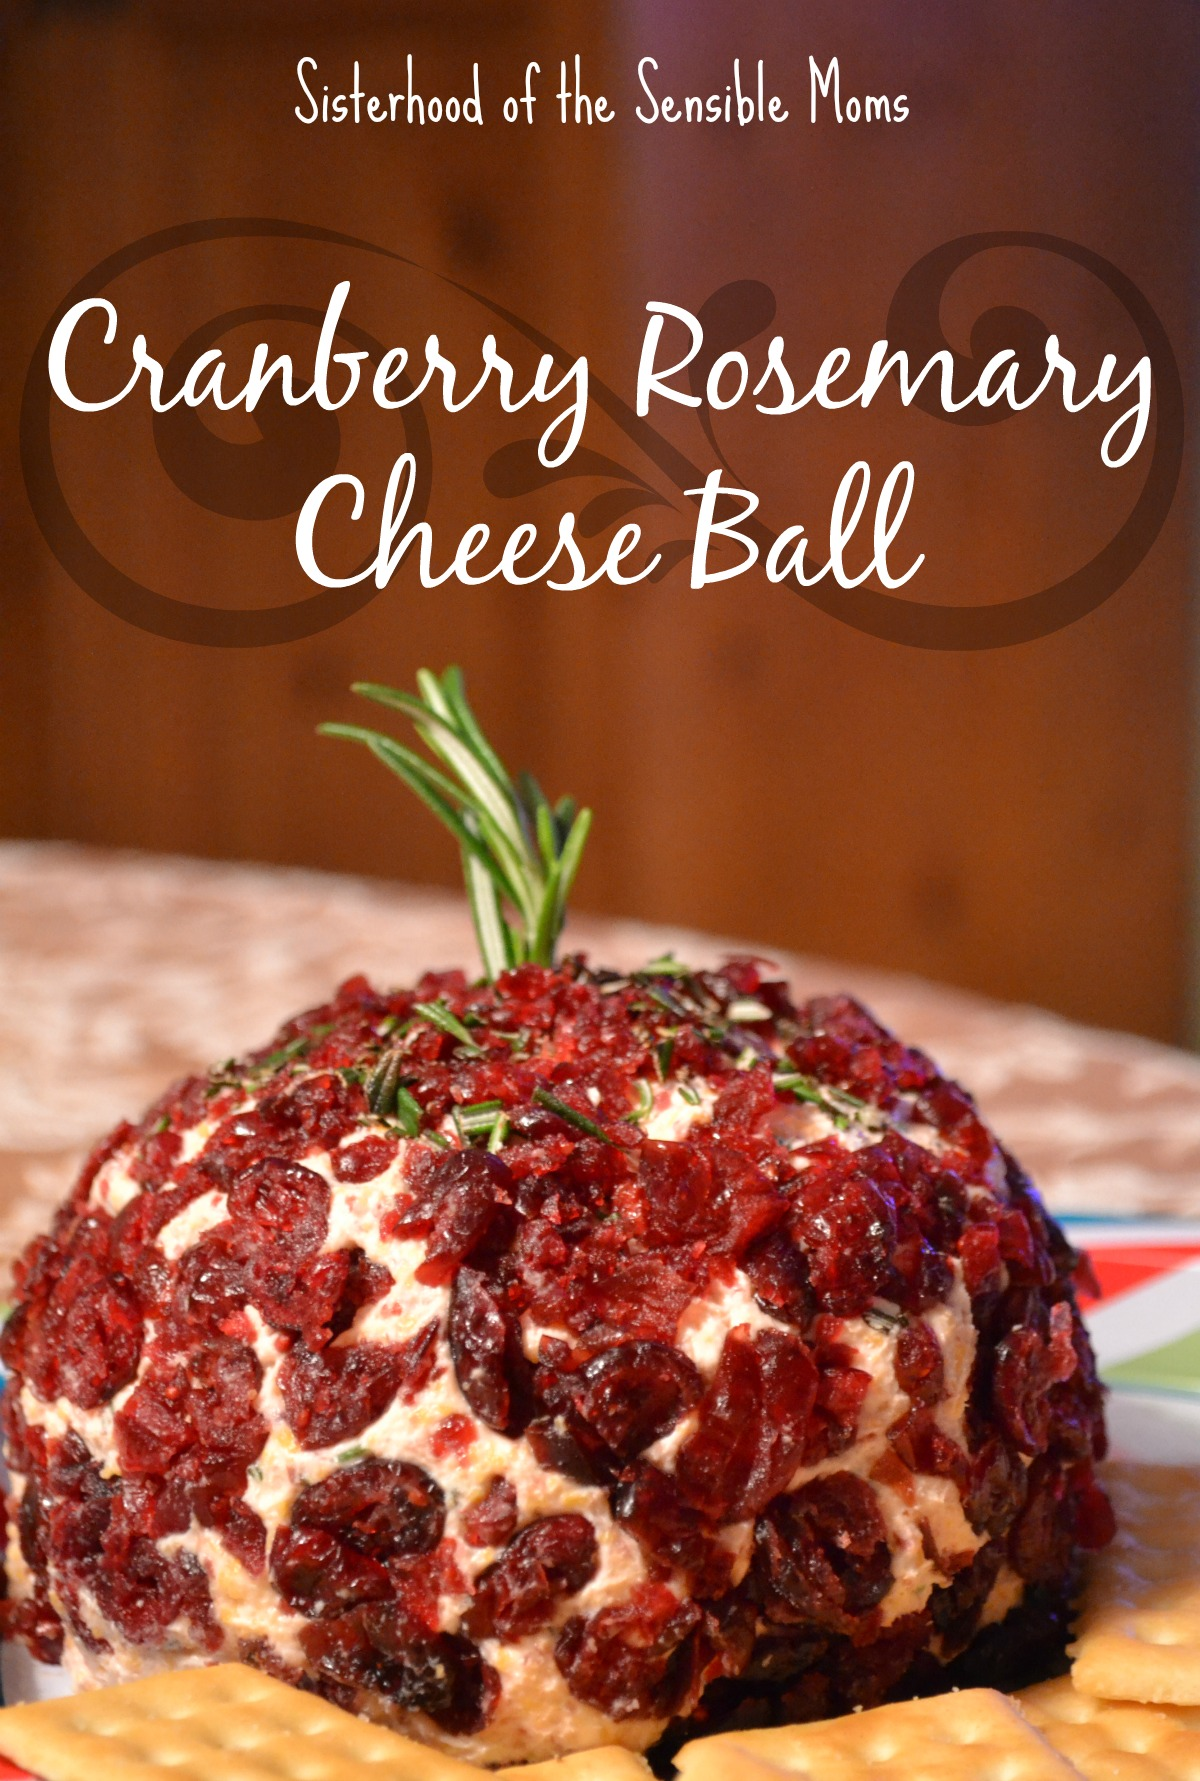 This cranberry rosemary cheese ball recipe is the perfect blend of sweet and savory. Great for a party or tailgate. Sisterhood of the Sensible Moms